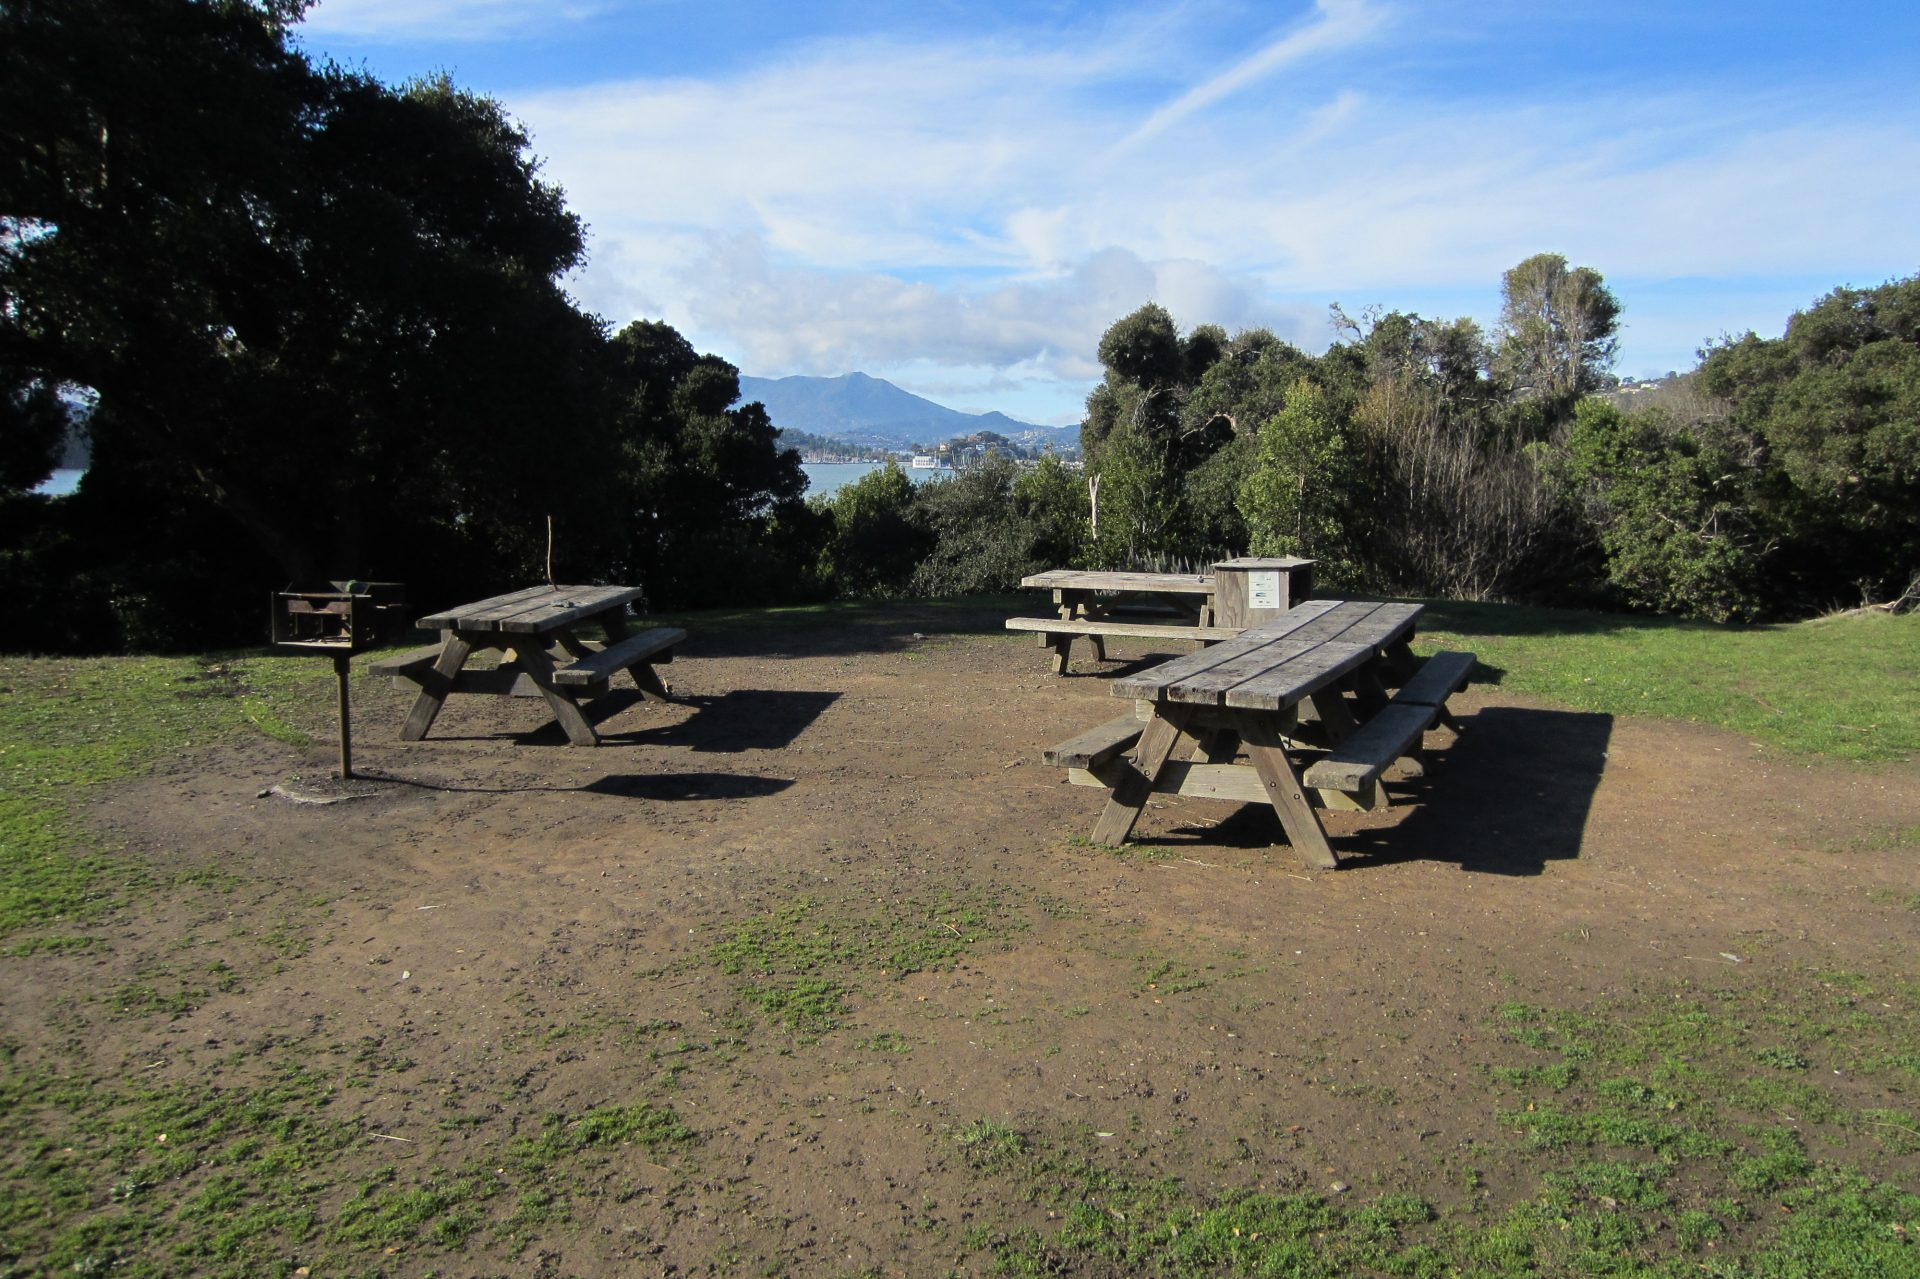 three picnic tables, metal barbecue, trees, Mat Tamalpais in distance